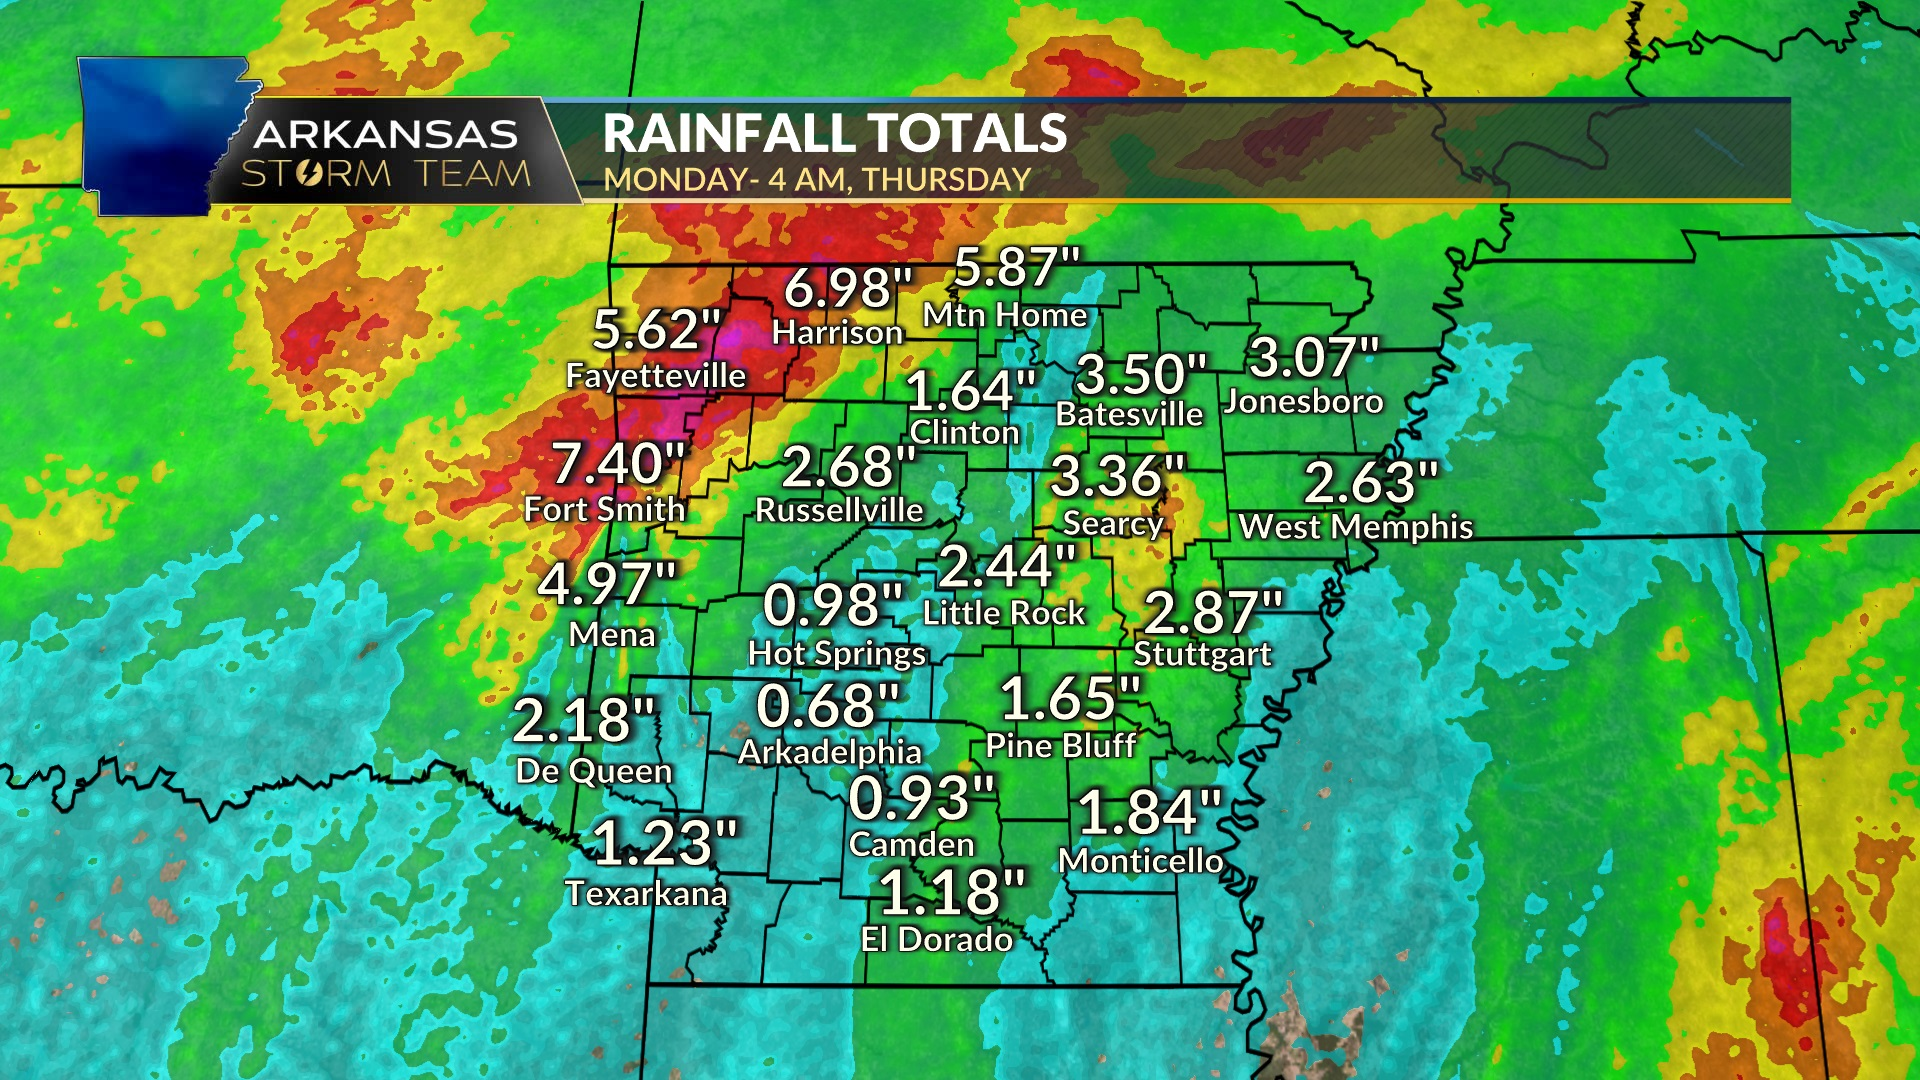 20 Day rainfall totals exceed 20 inches across areas of Arkansas ...